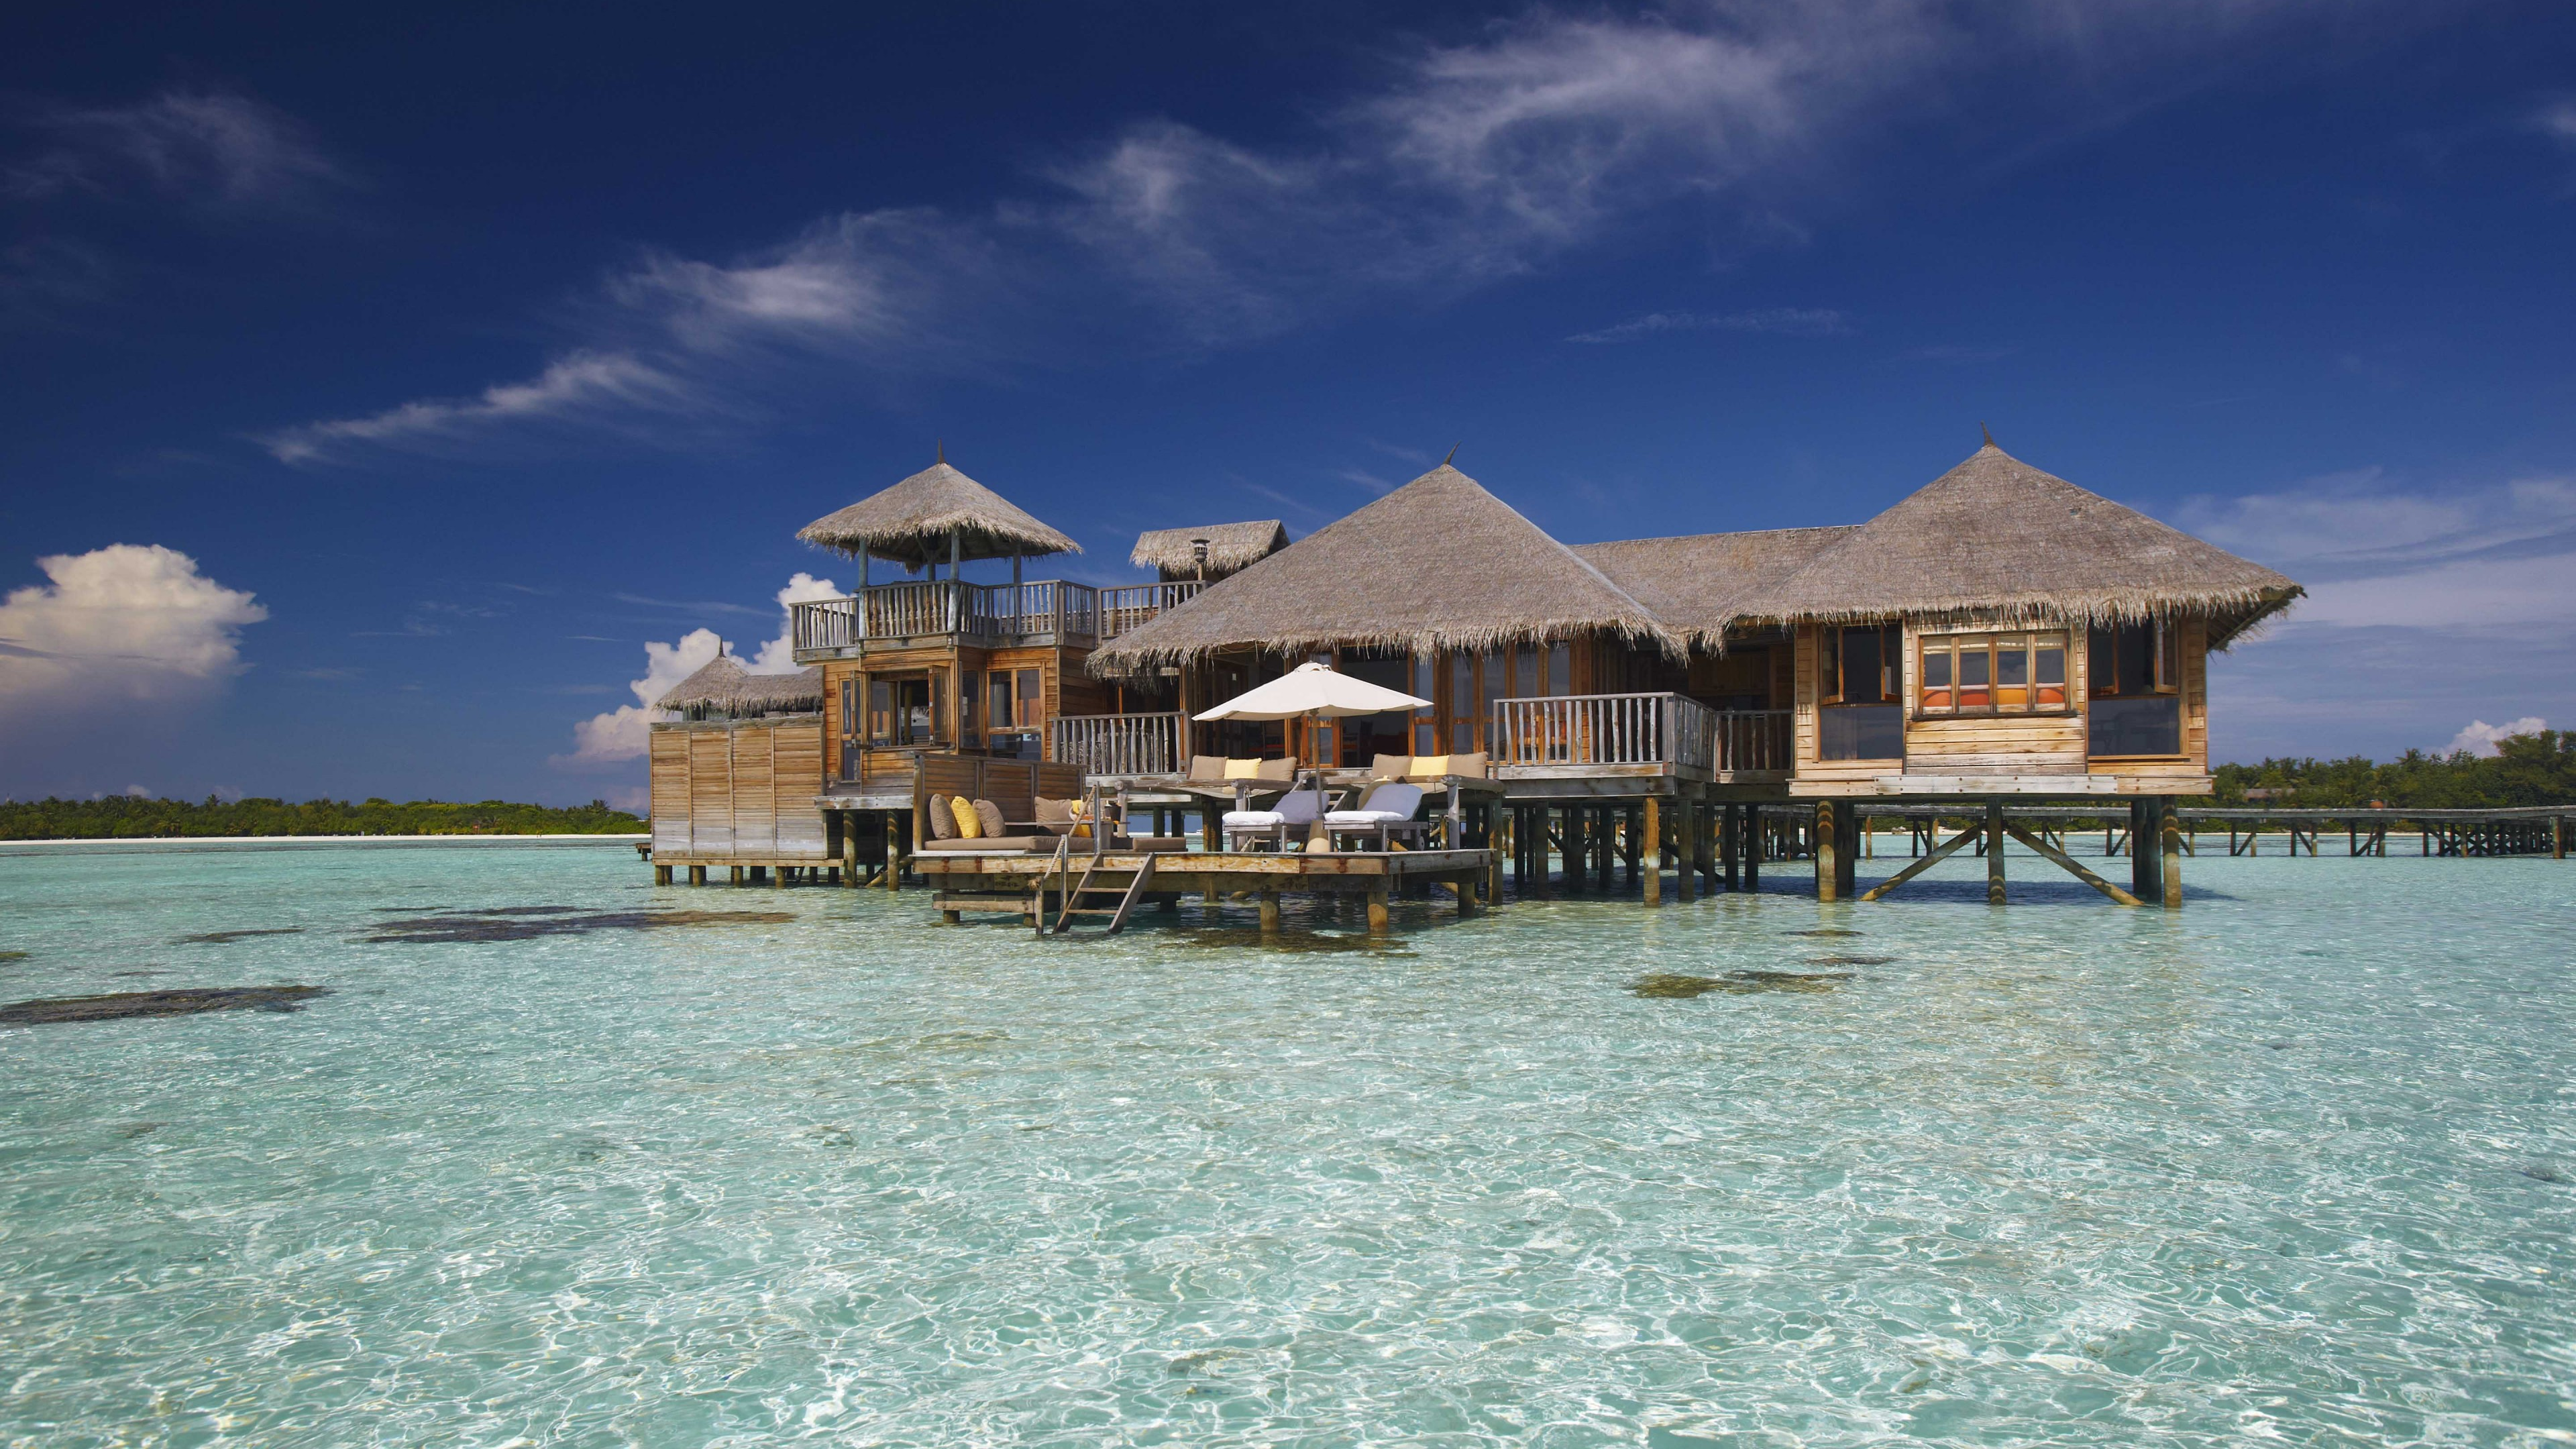 Wallpapers Gili Lankanfushi, 5k, 4k wallpaper, Maldives, Best Hotels